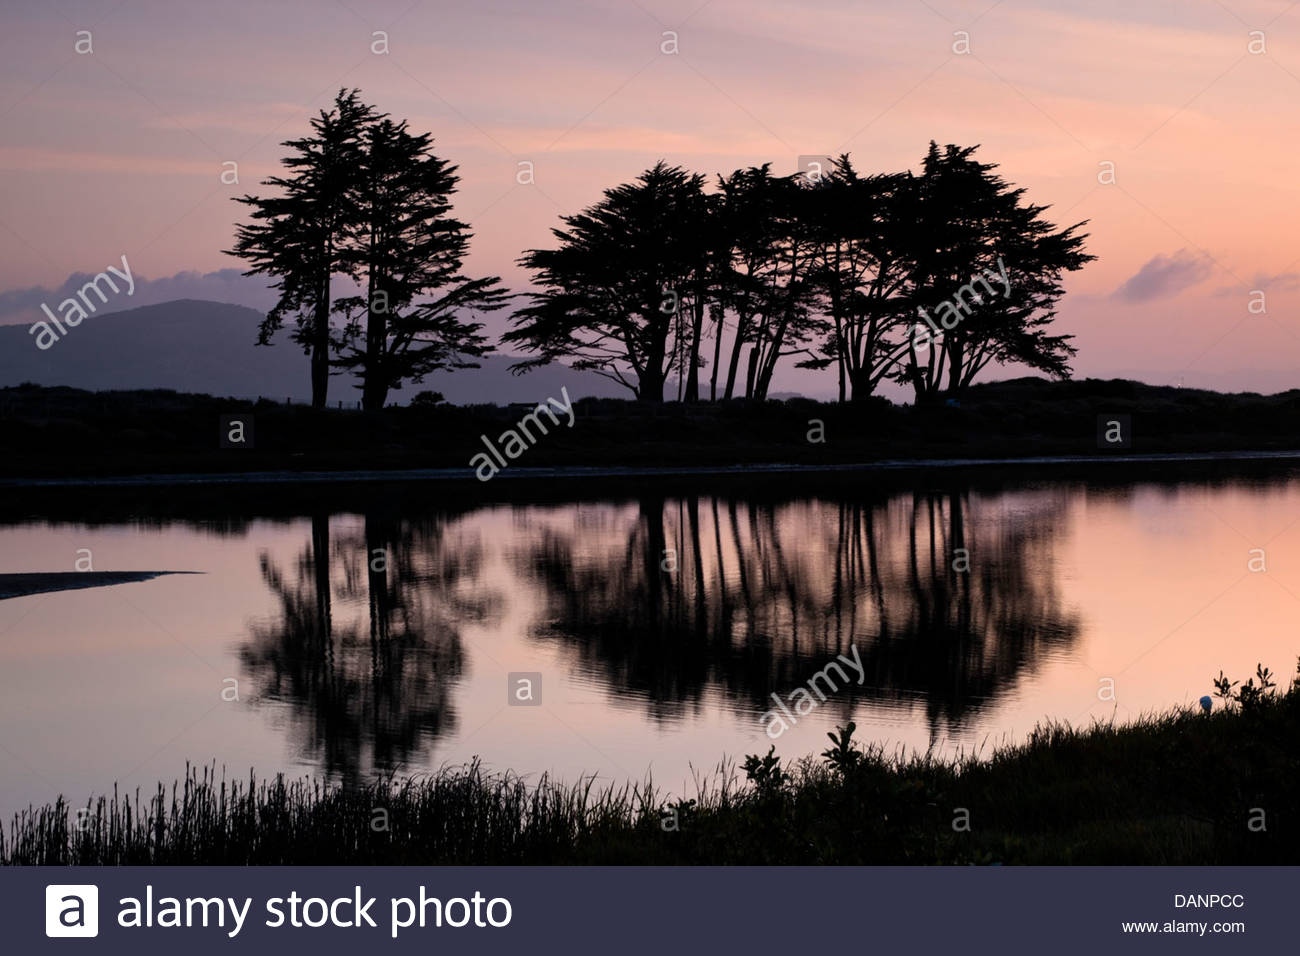 Monterey Cypress Trees Silhouetted in Pre-Dawn Light at Crissy Field Marsh, San Francisco, California - Stock Image